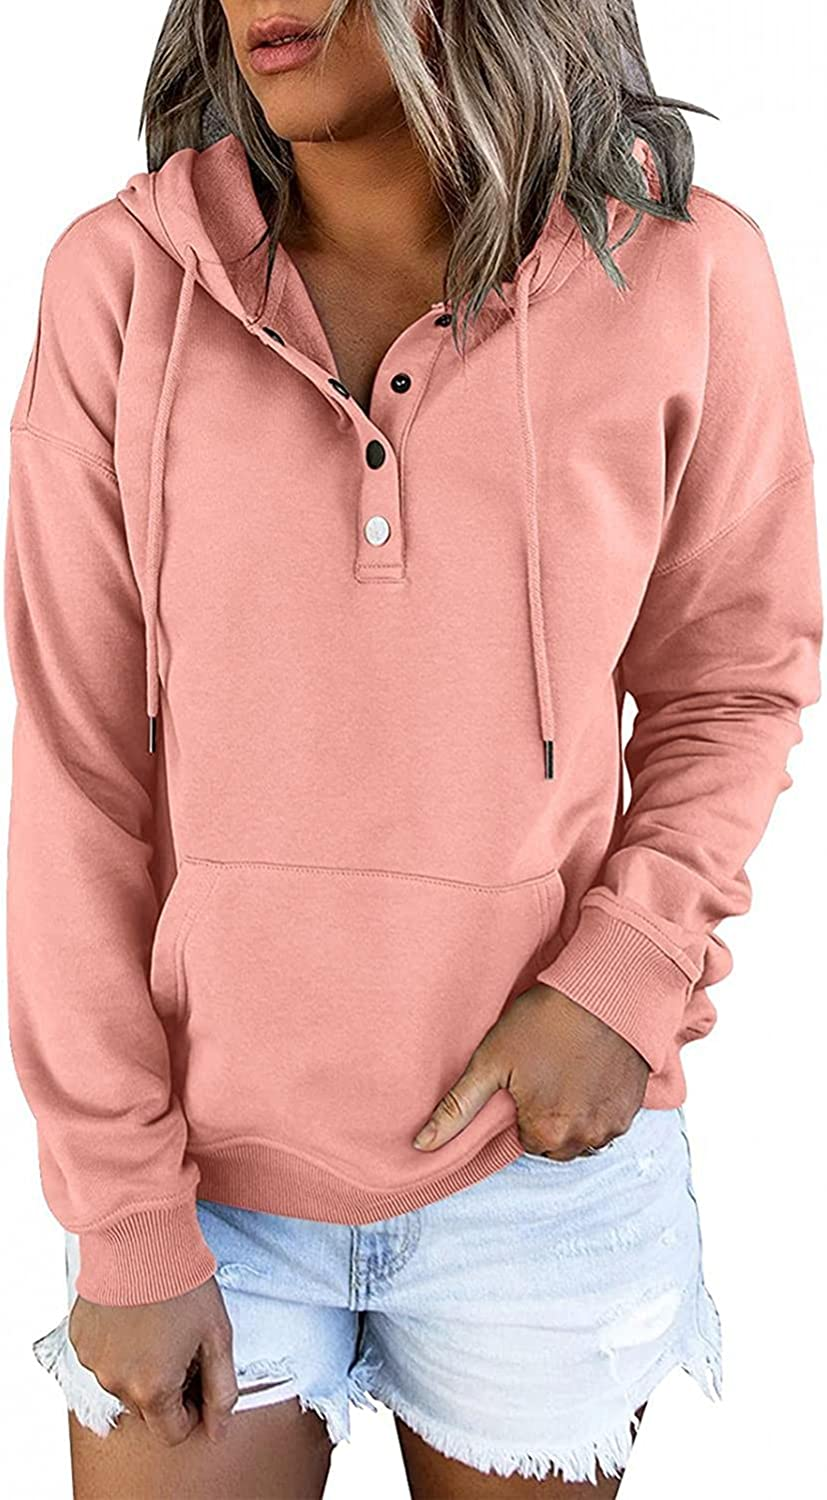 Jaqqra Hoodies for Women Button Down Long Sleeve Hoodie Tops Solid Drawstring Sweatshirts Loose Hooded Pullover Shirts